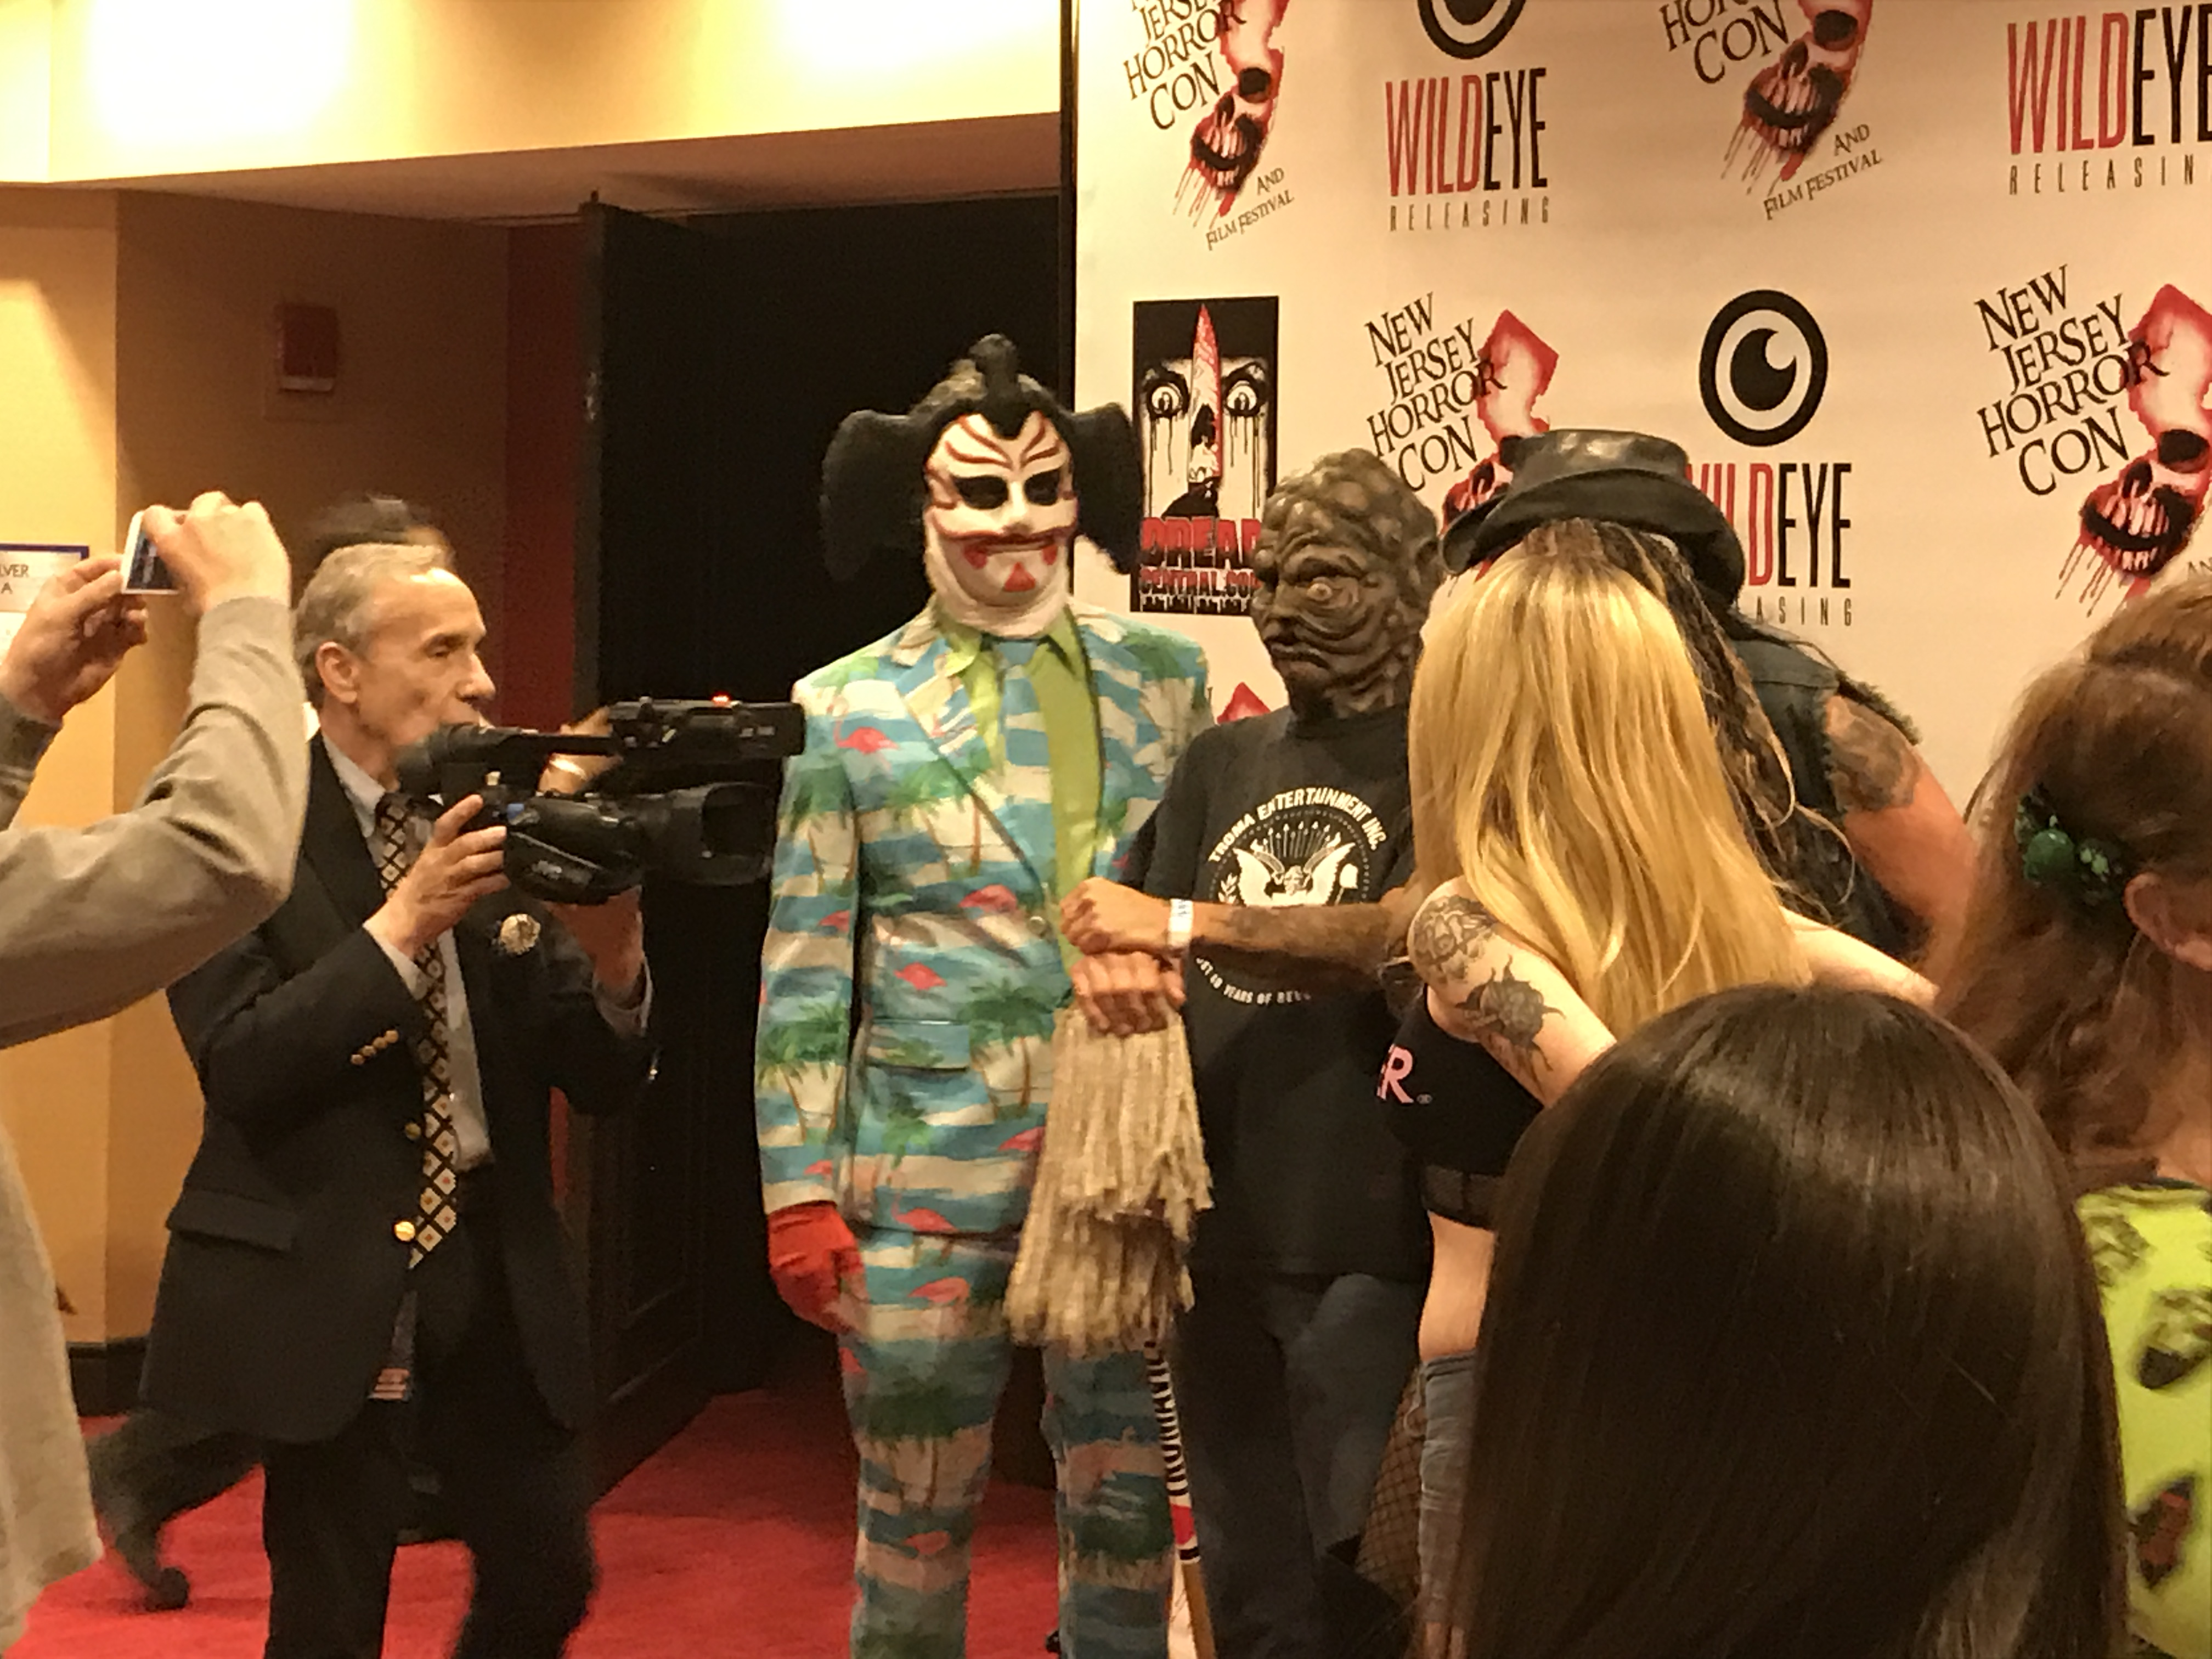 New Jersey Horror Con Film Festival 2017 The Films Of Day 1